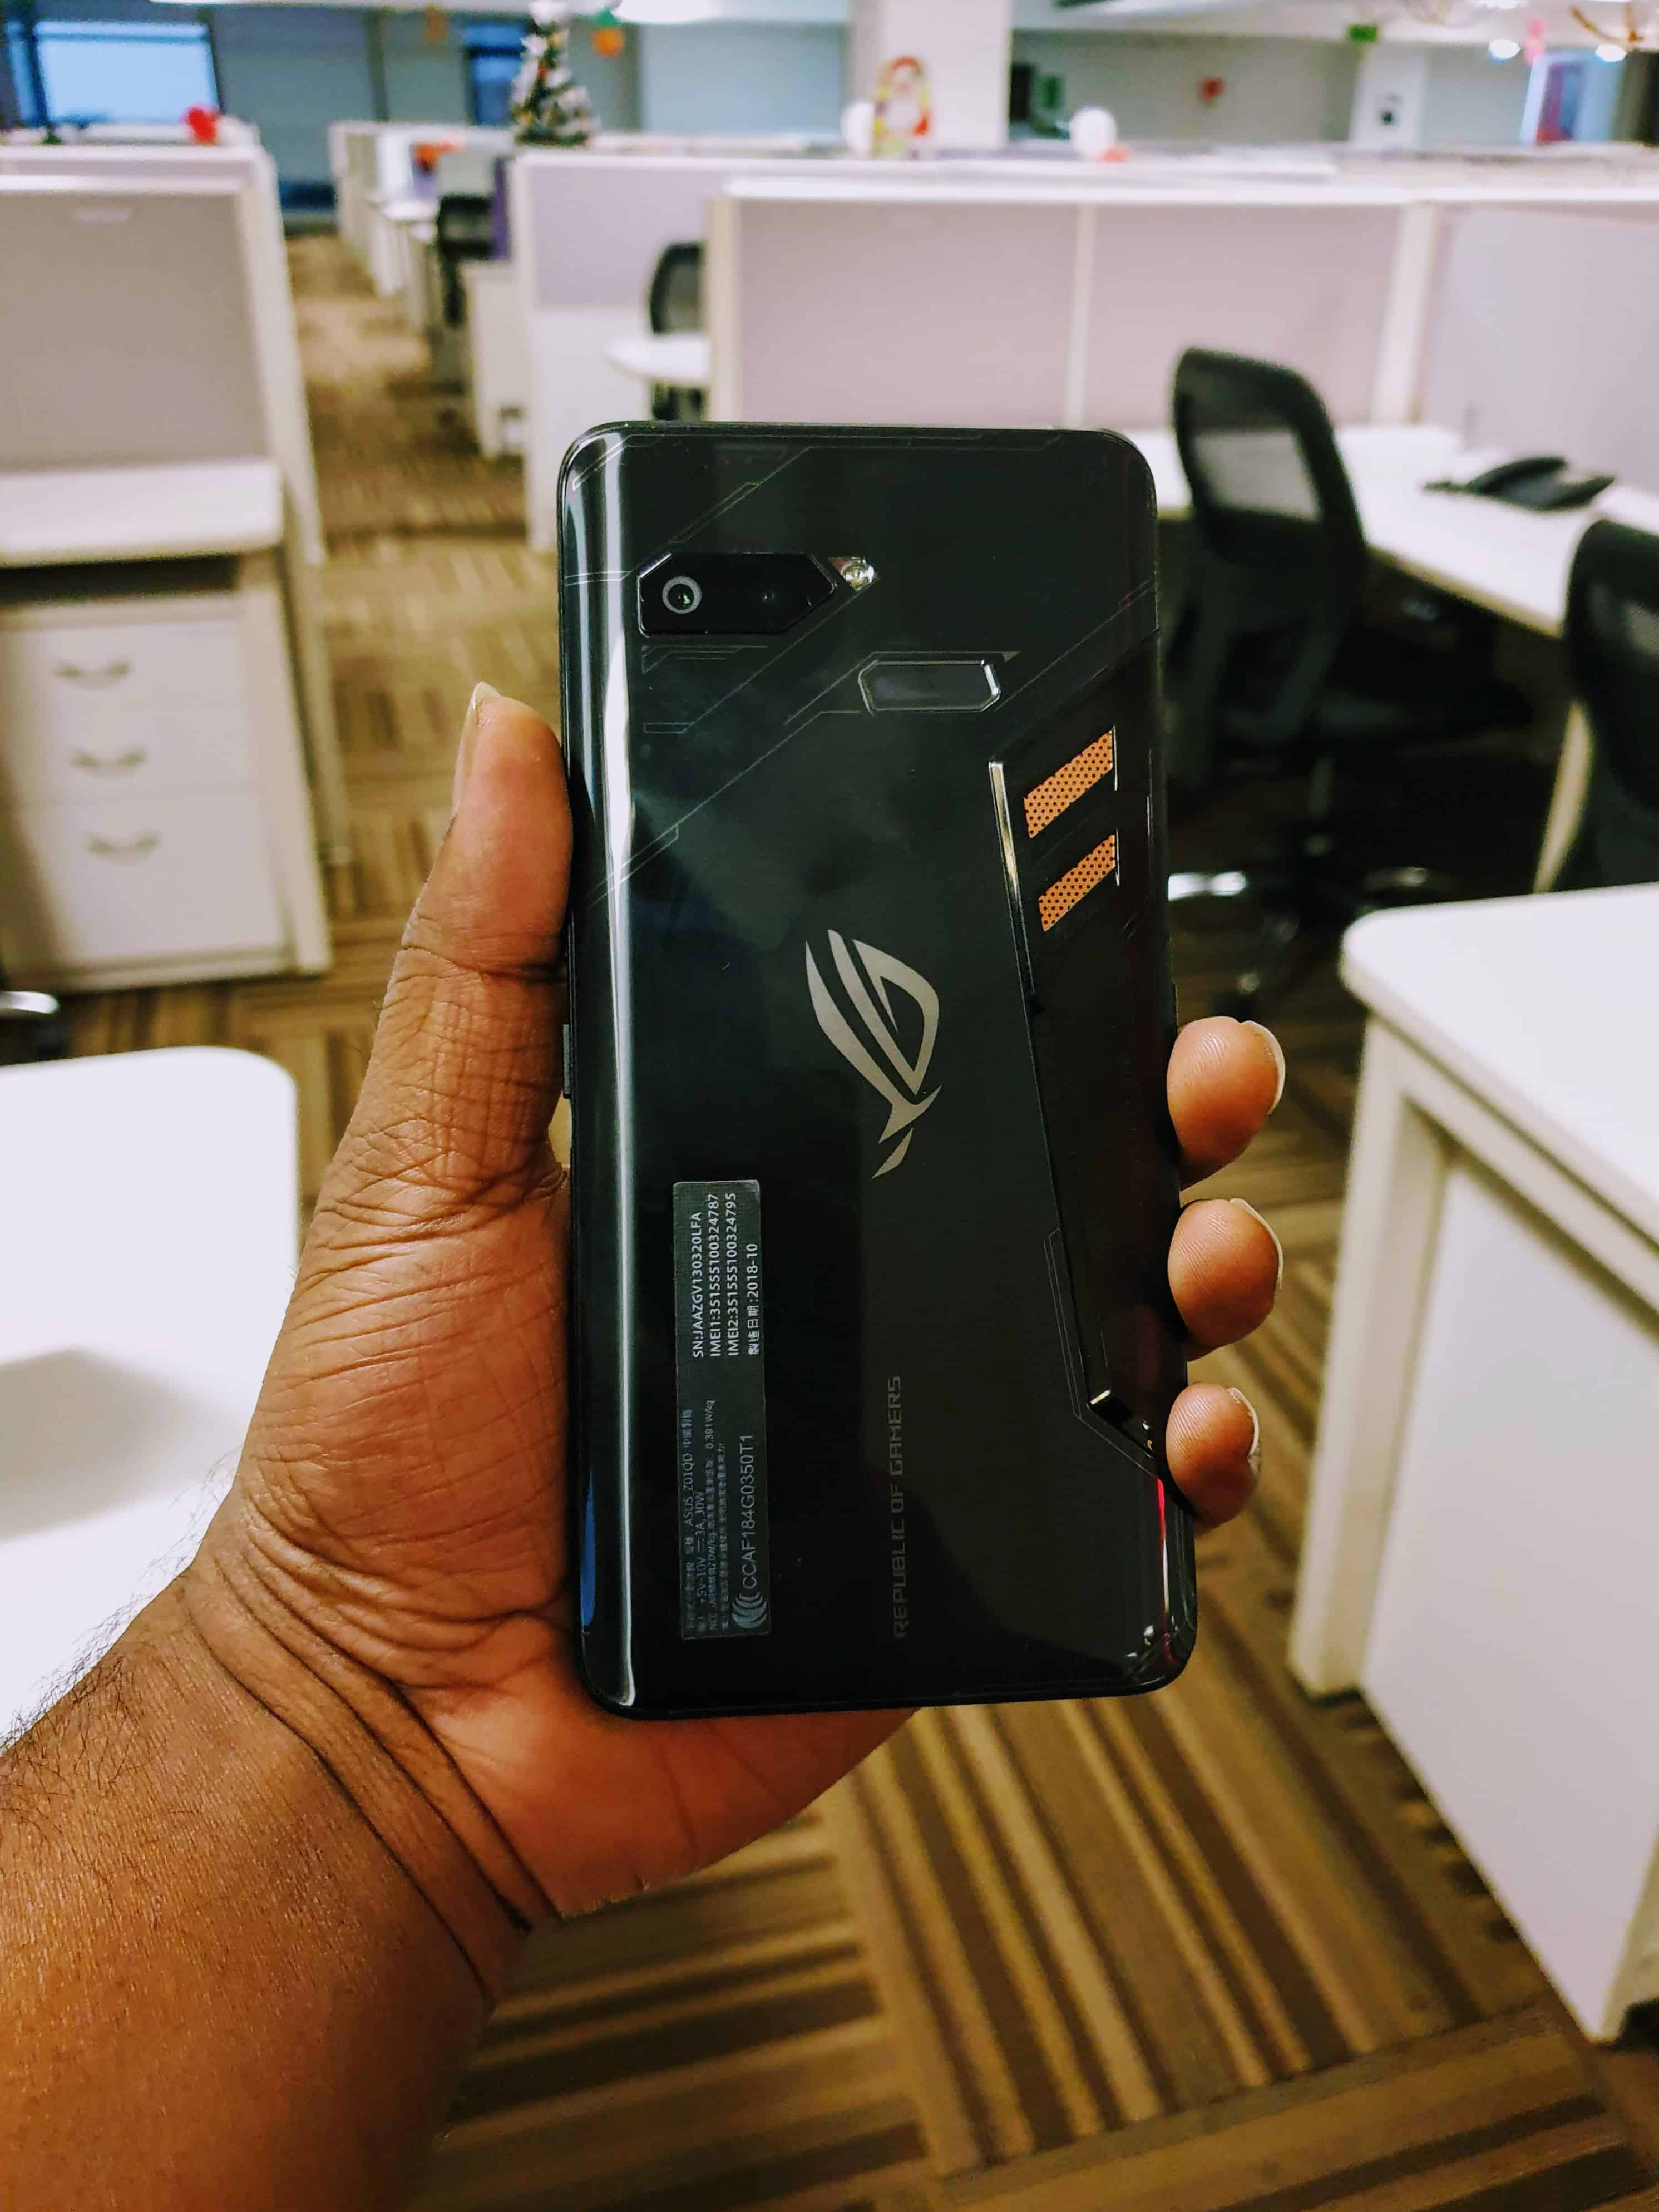 Asus ROG Phone Review - Should You Buy it? - 1